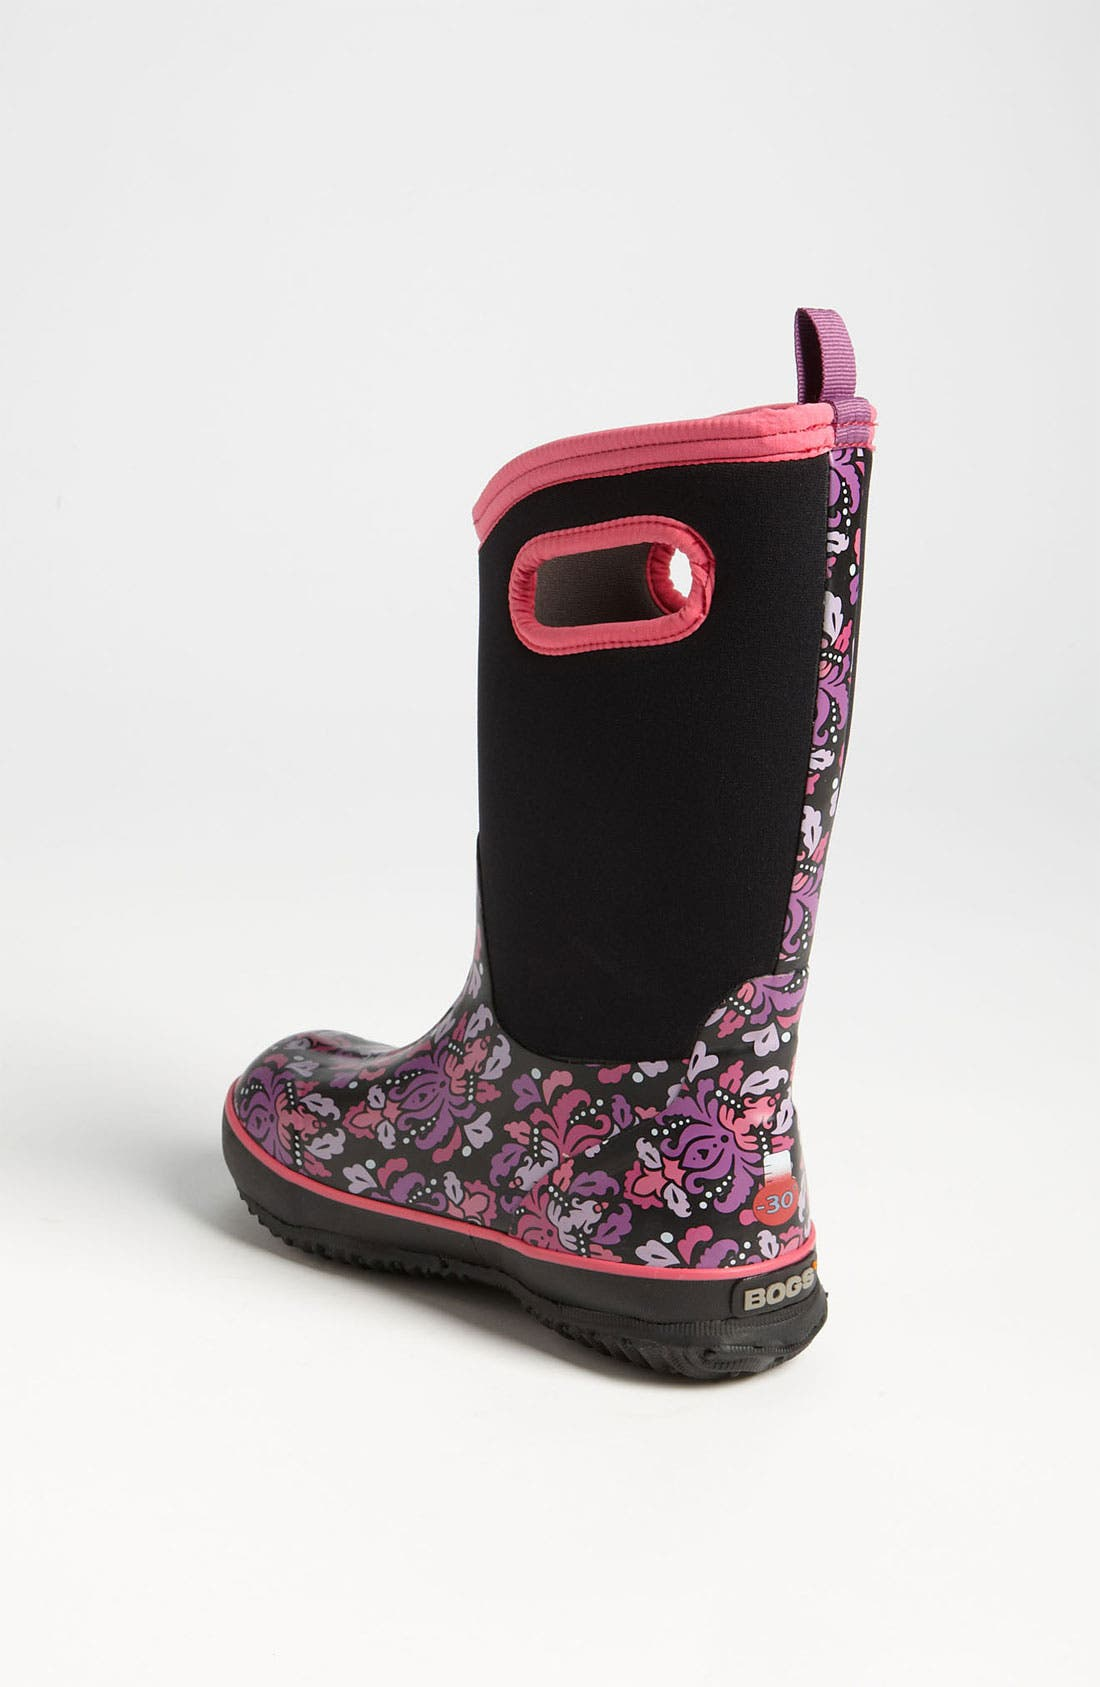 Alternate Image 2  - Bogs 'Classic High - Fleur' Waterproof Boot (Toddler, Little Kid & Big Kid) (Nordstrom Exclusive)